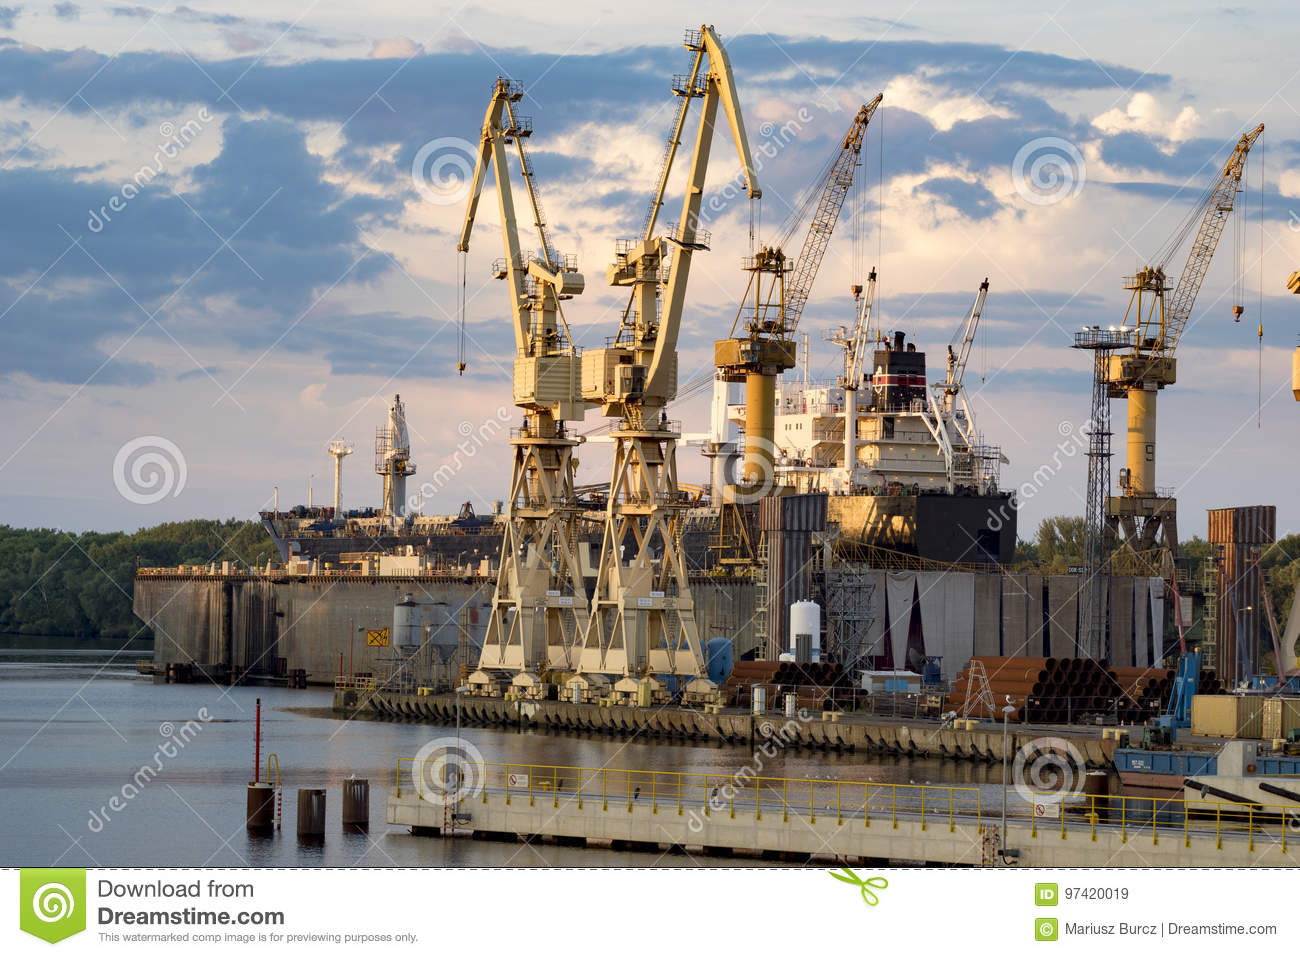 Ships in repair yard